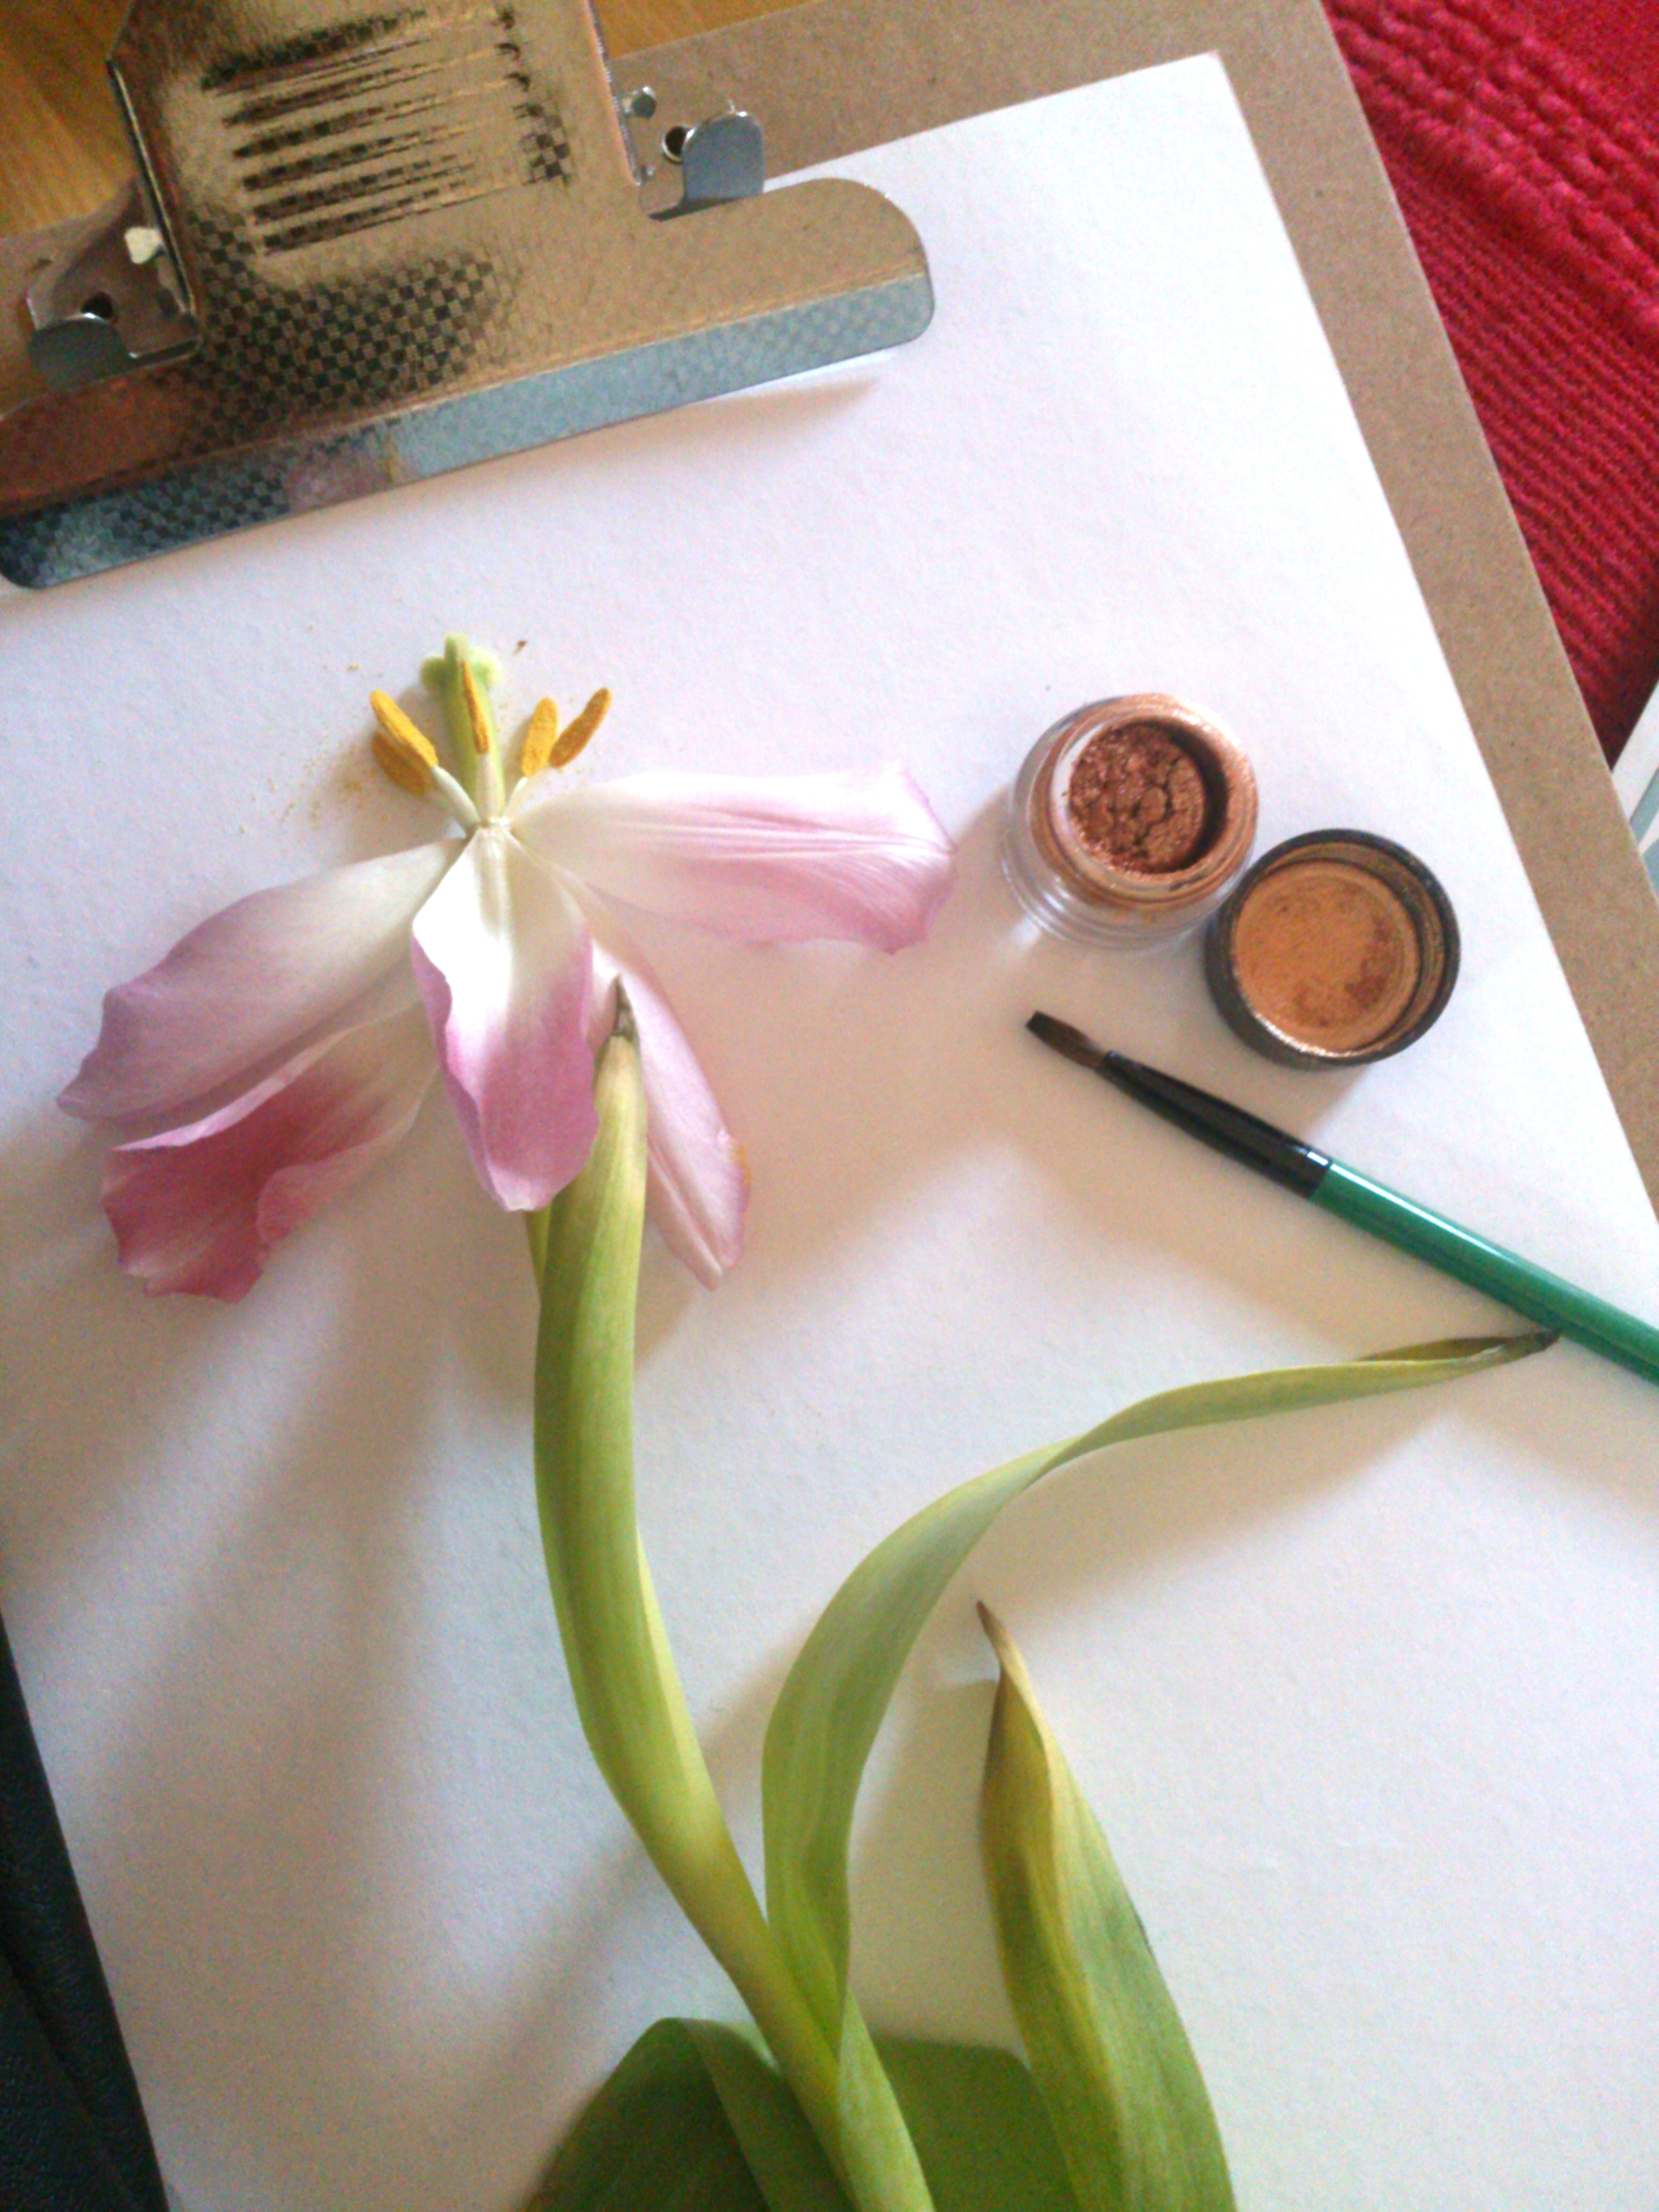 Using make up brushes, rather than paint brushes to fill in colour using strong loose pigments.